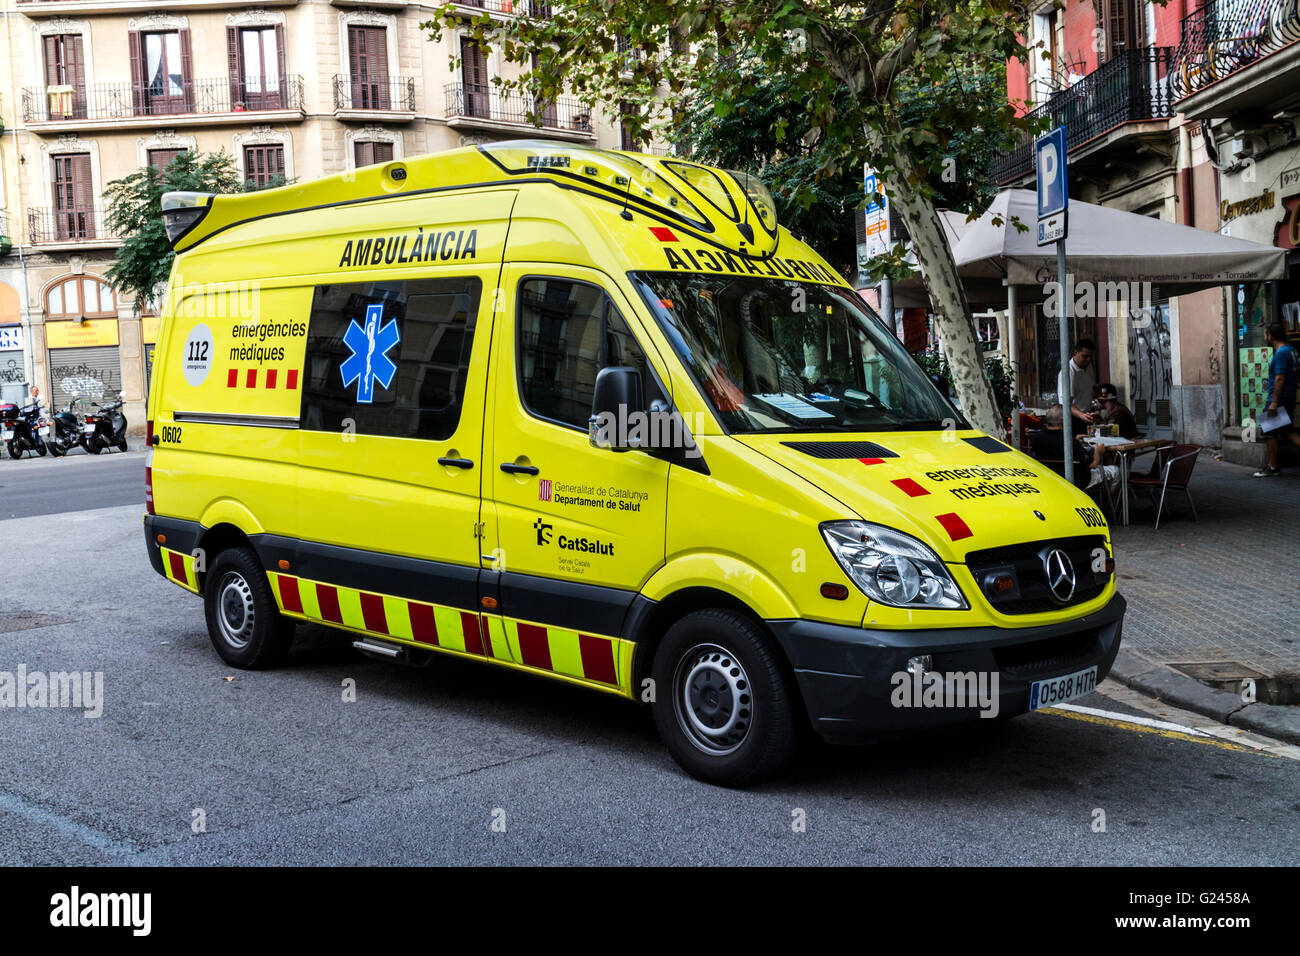 Spanish ambulance out on call, Barcelona, Catalonia, Spain. - Stock Image